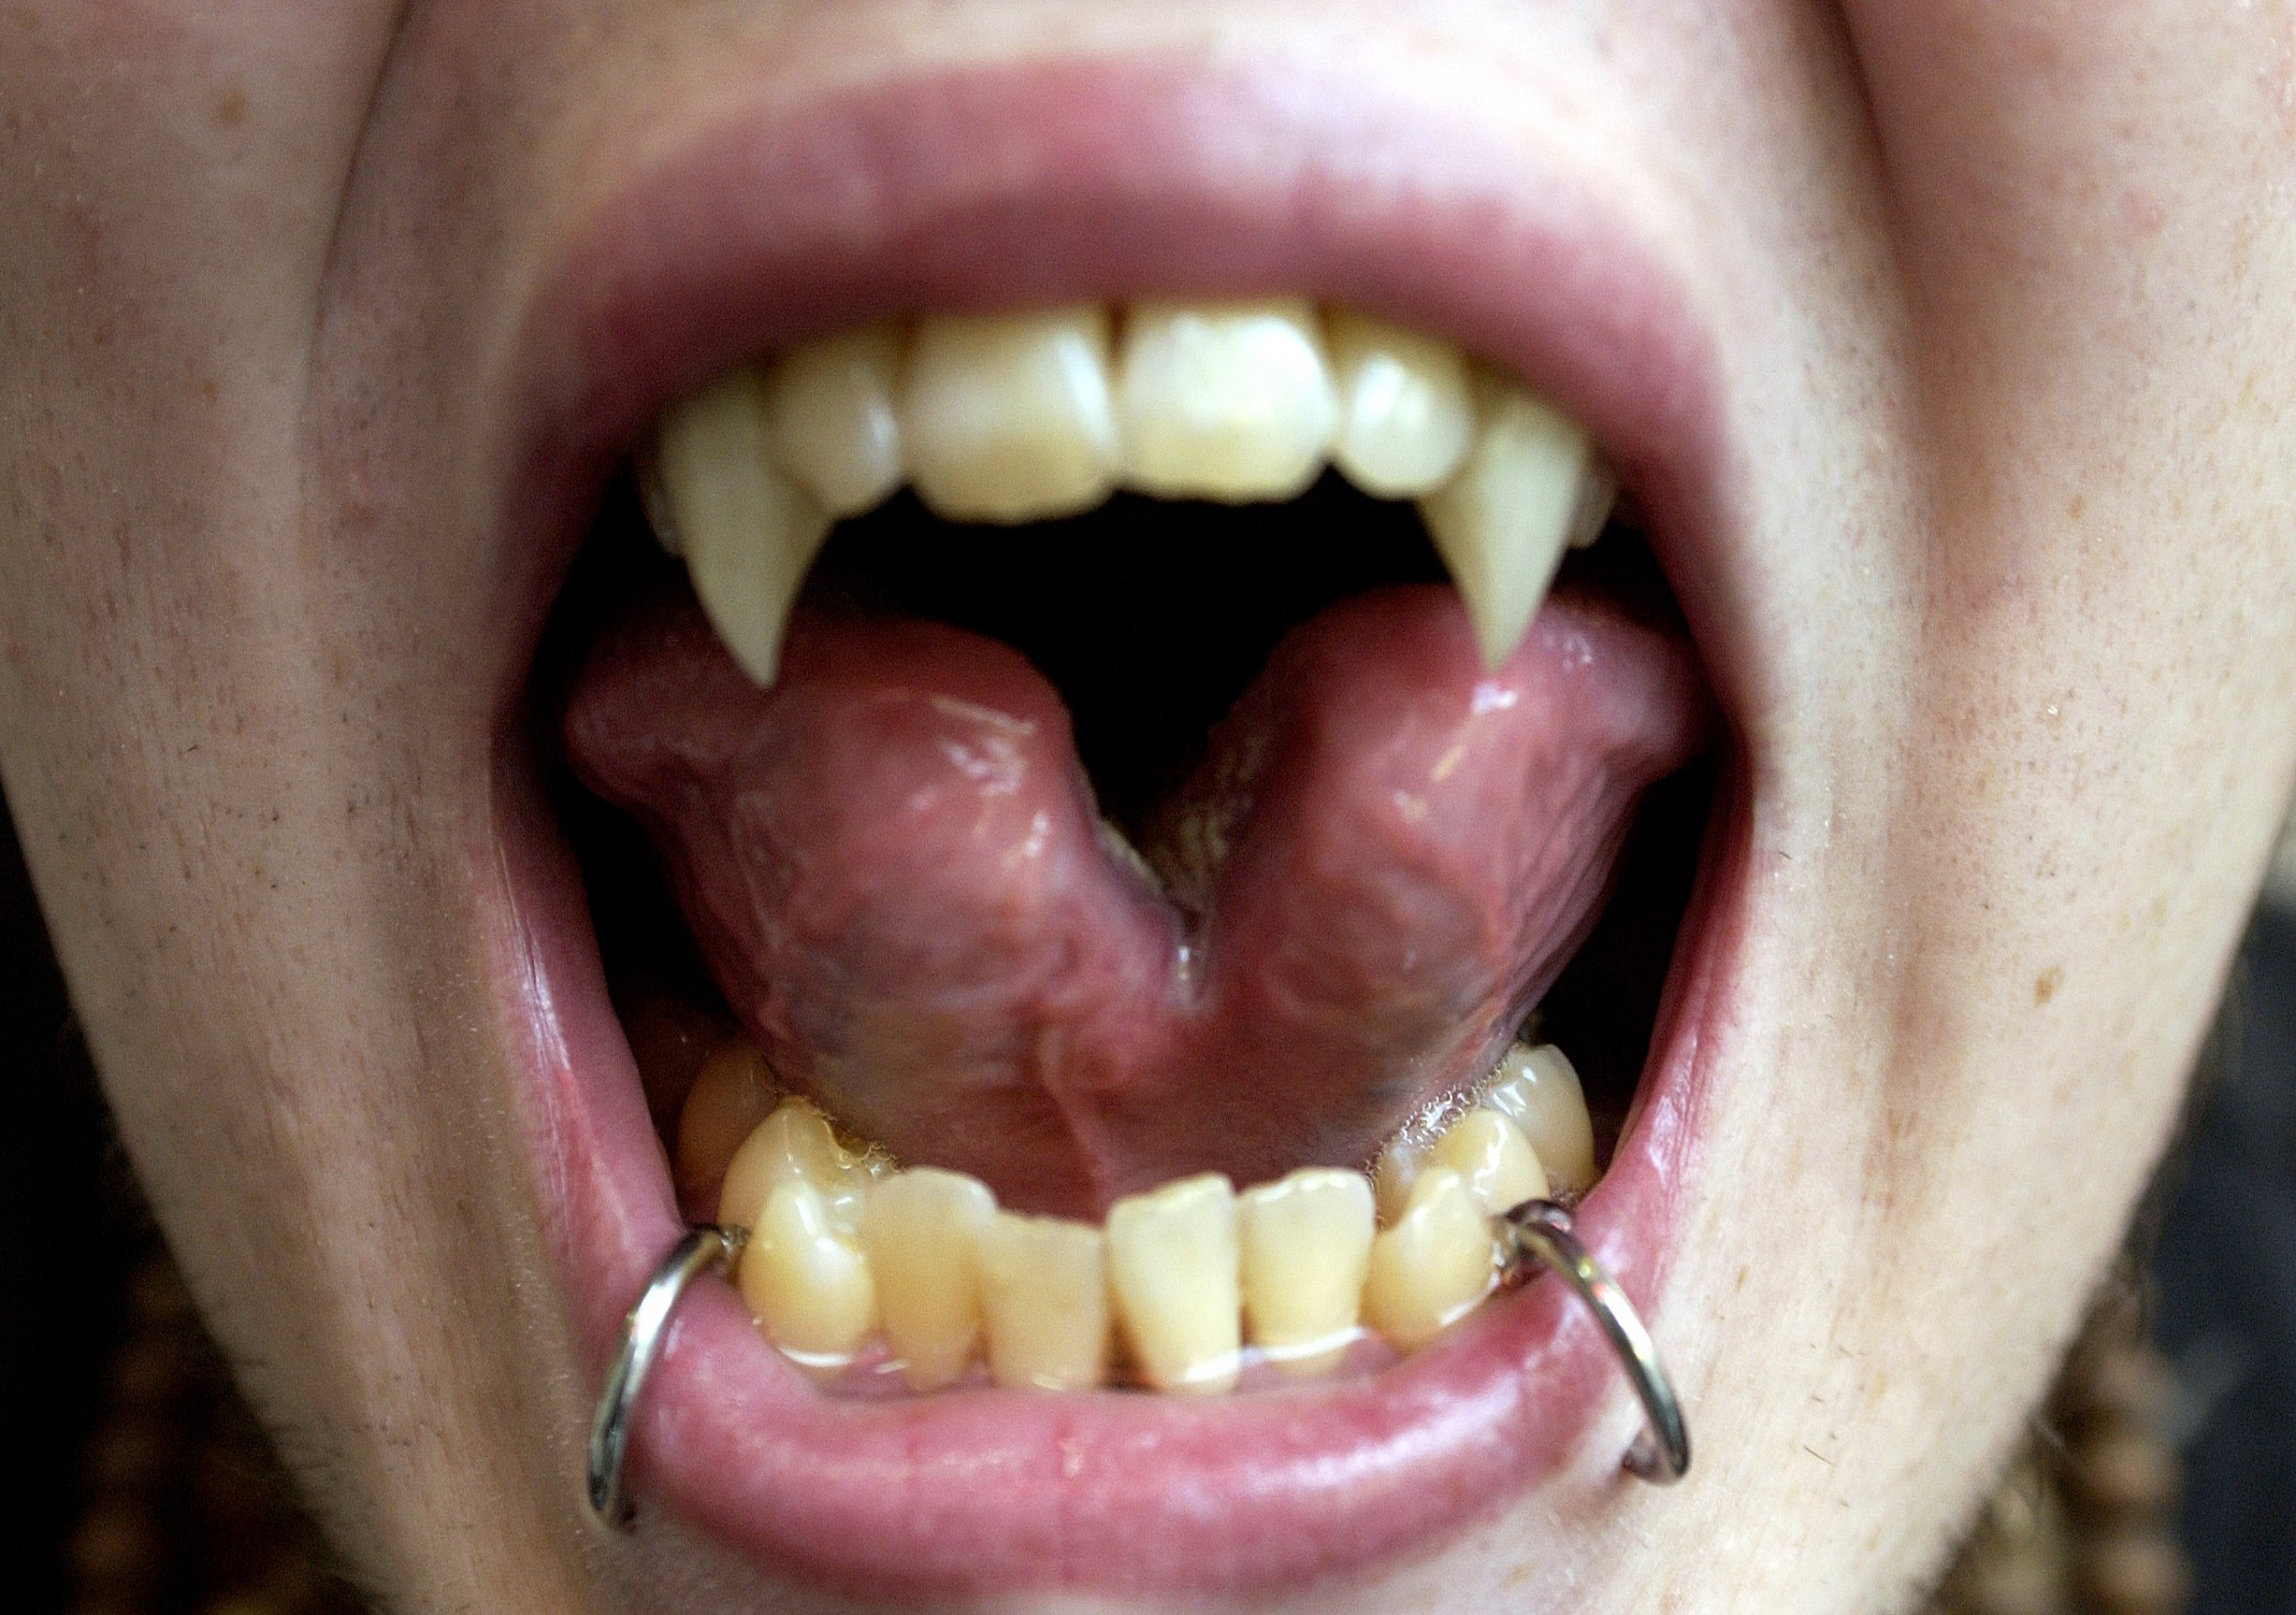 What Is Tongue Splitting Trend Could Have Dangerous Health Risks Surgeons Warn